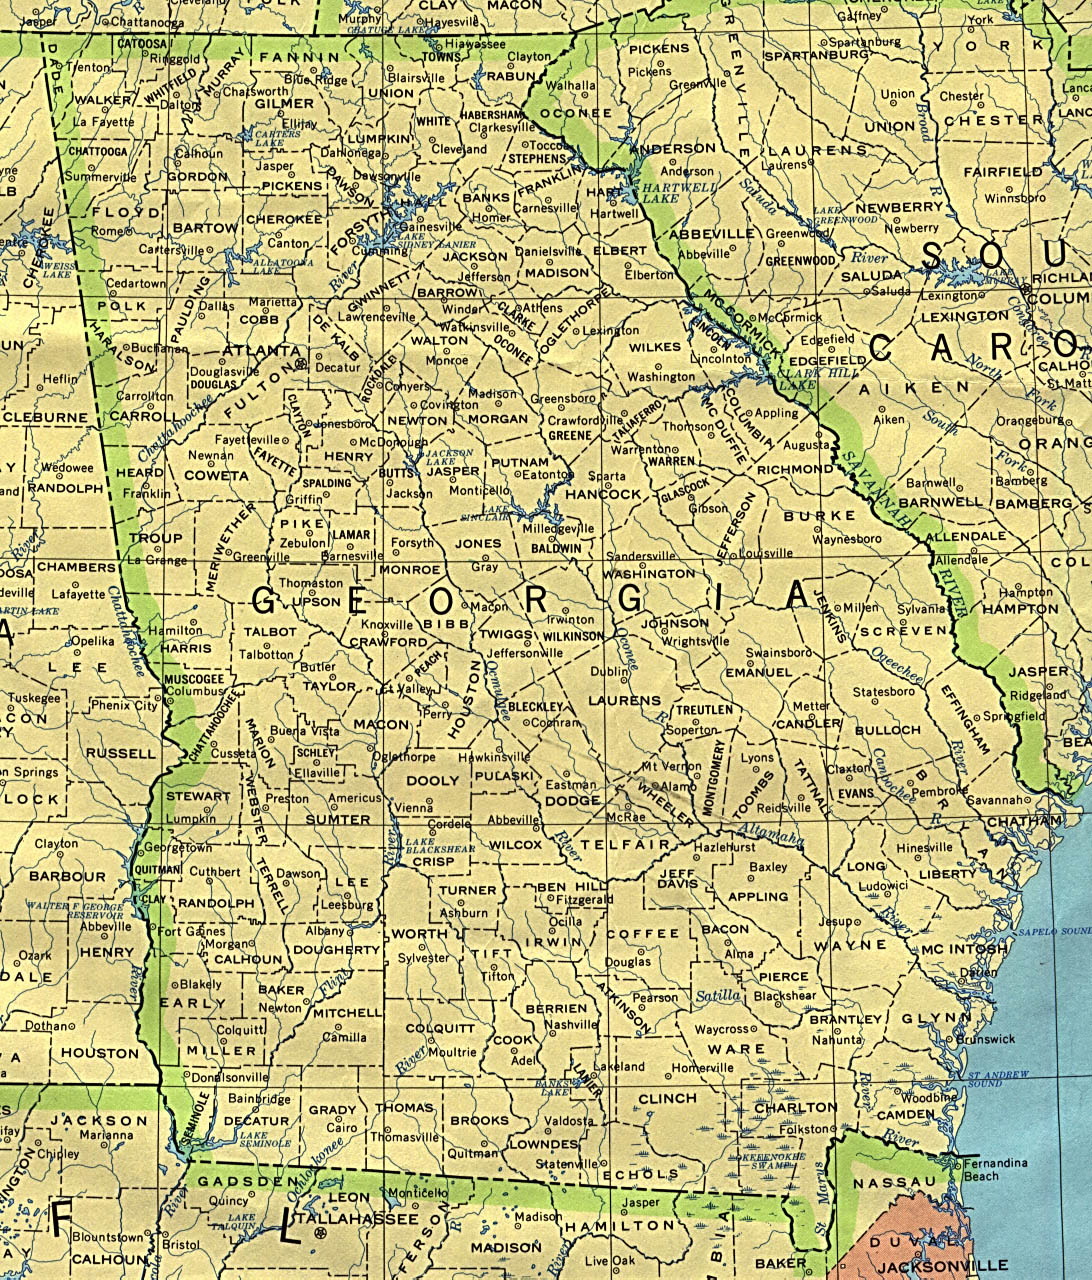 Georgia Map Of Counties And Cities